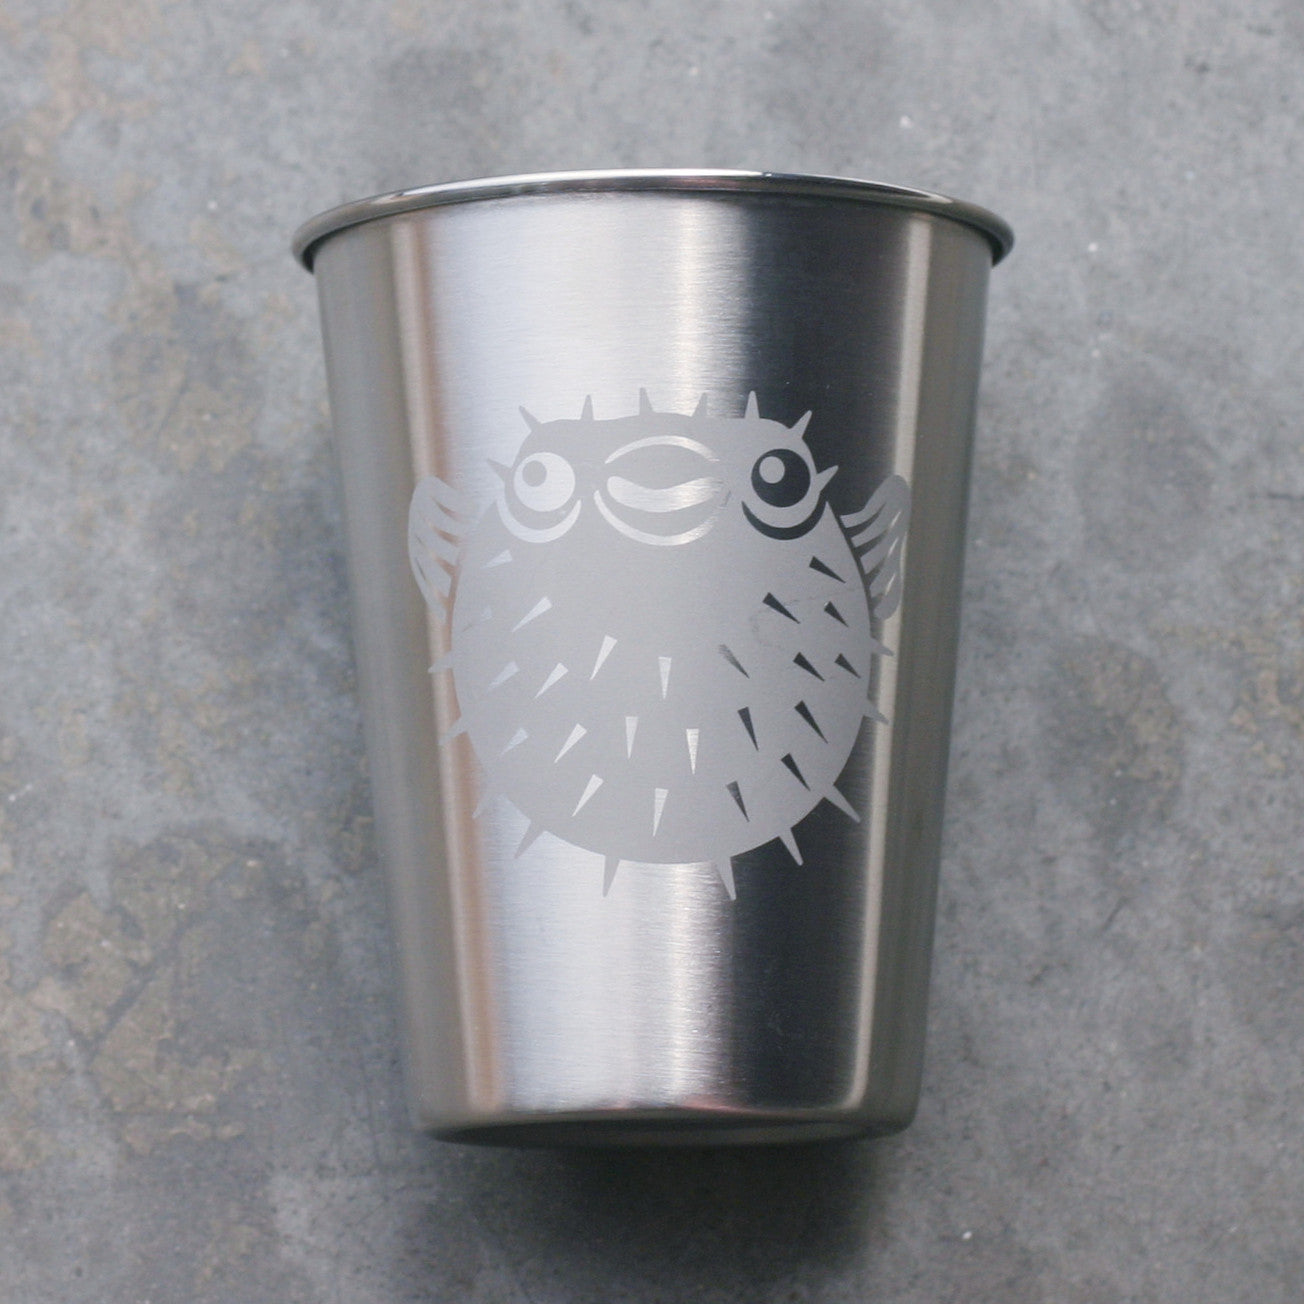 Puffer Fish stainless steel 12oz cup